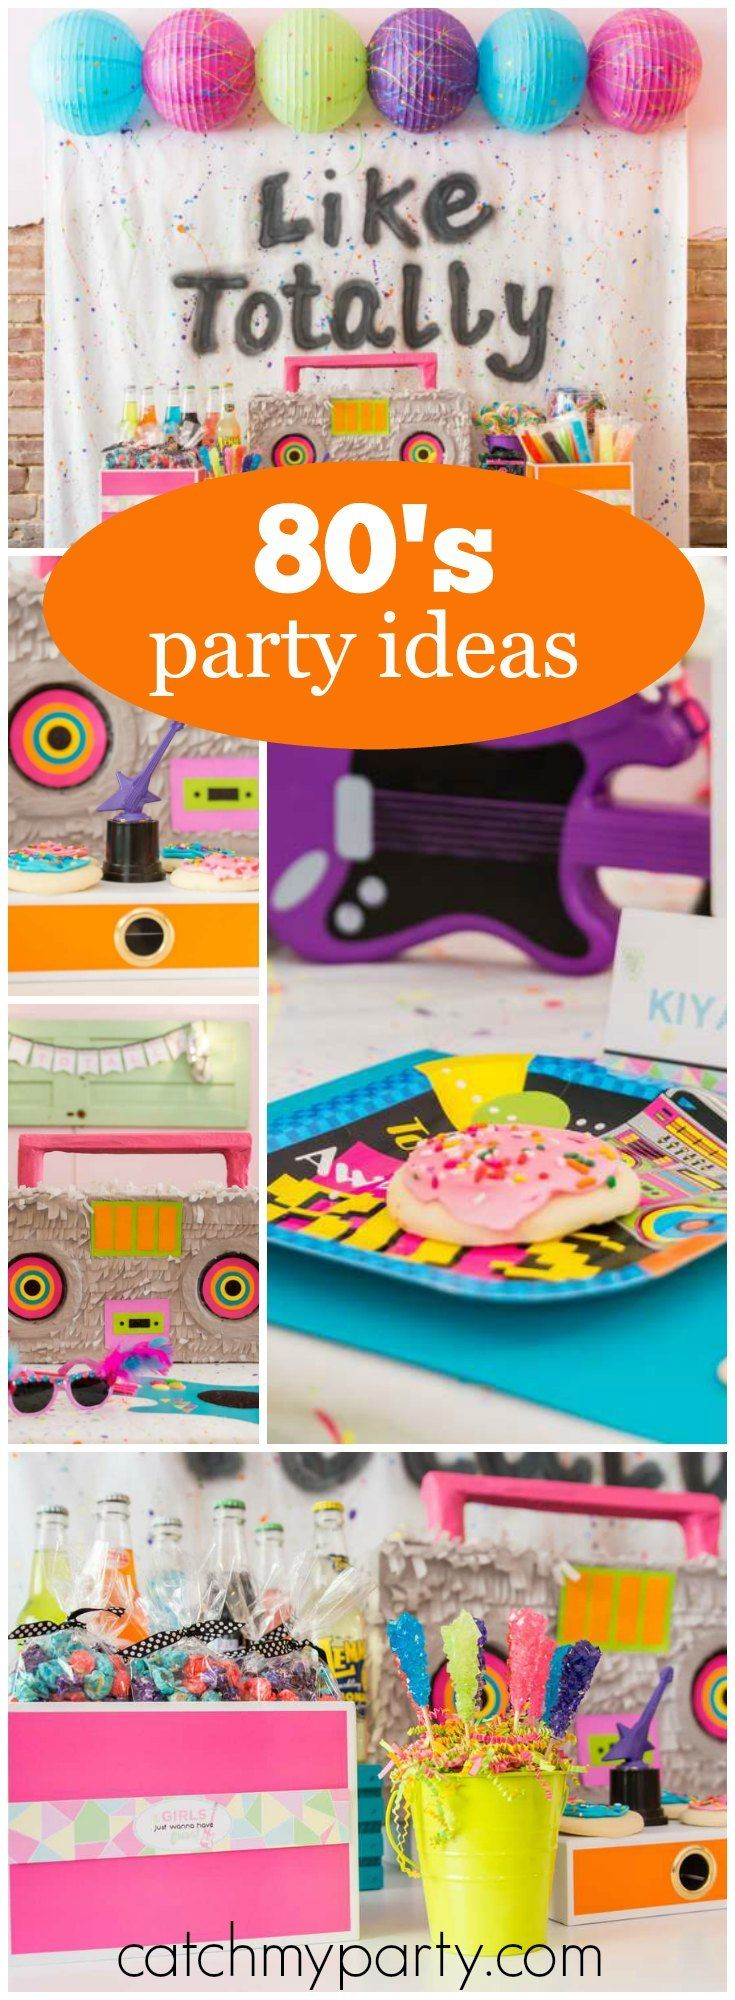 This 80's girl birthday party is like totally awesome! See more party ideas at Catchmyparty.com!